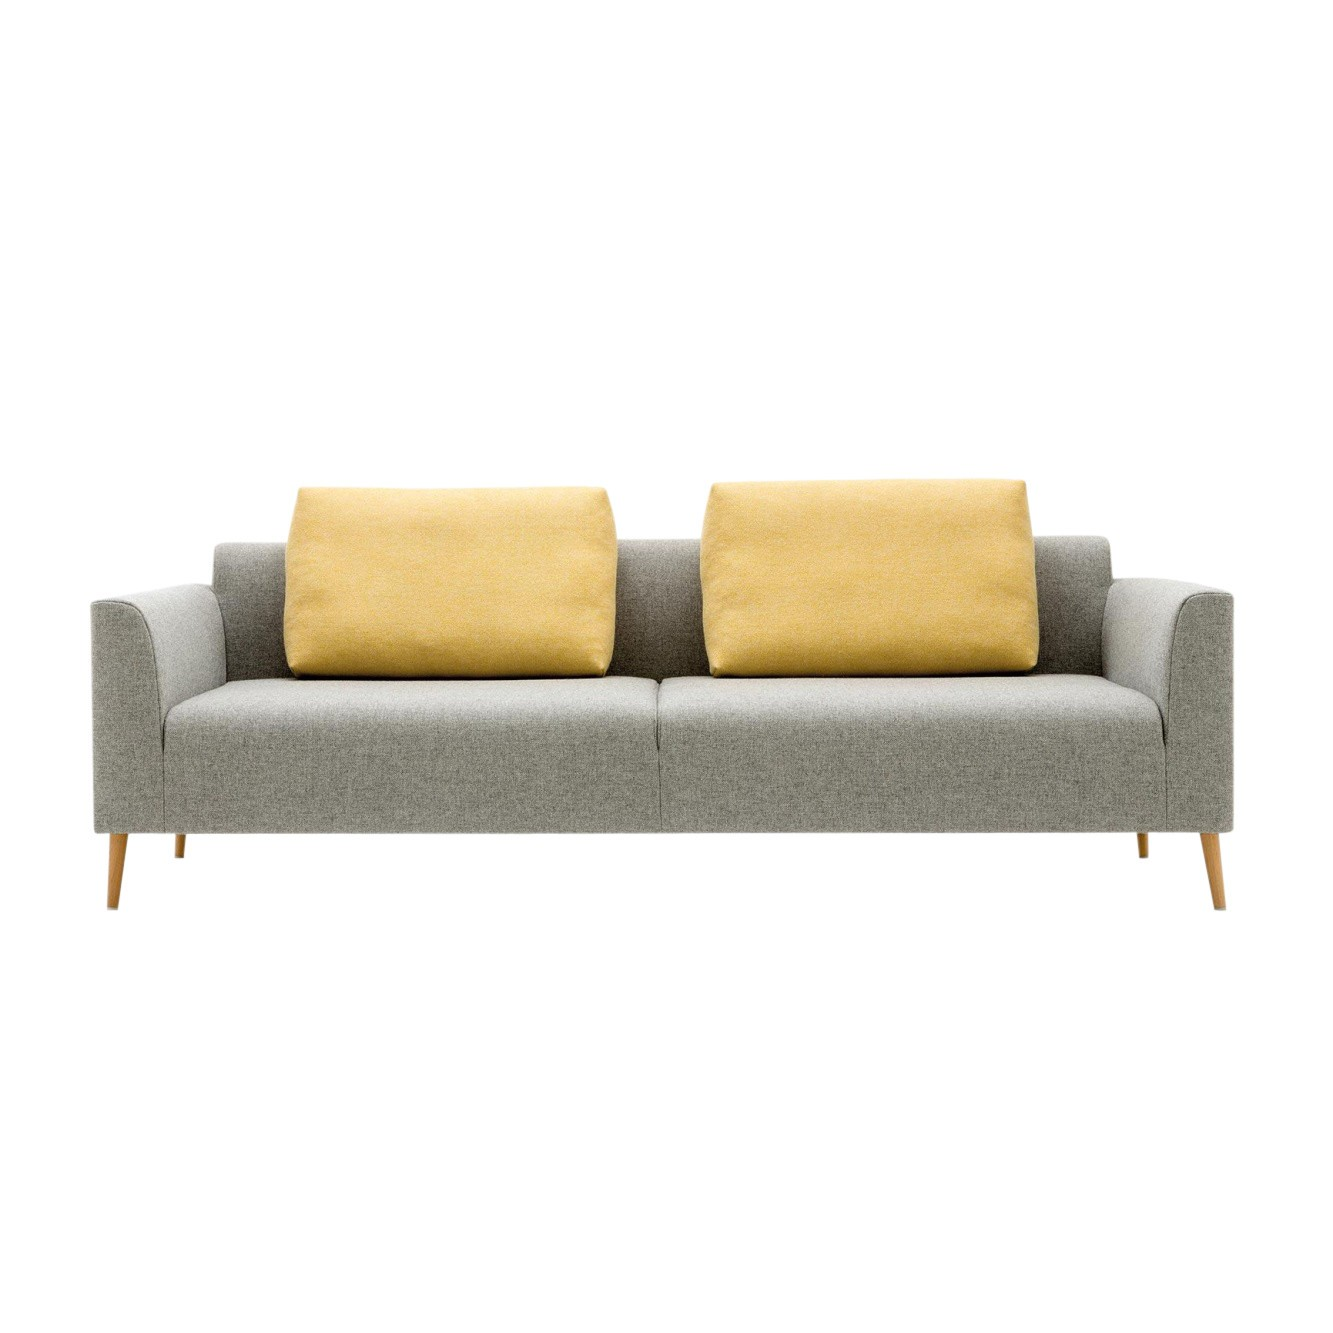 Freistil Rolf Benz Freistil 162 3 Sitzer Sofa Ambientedirect